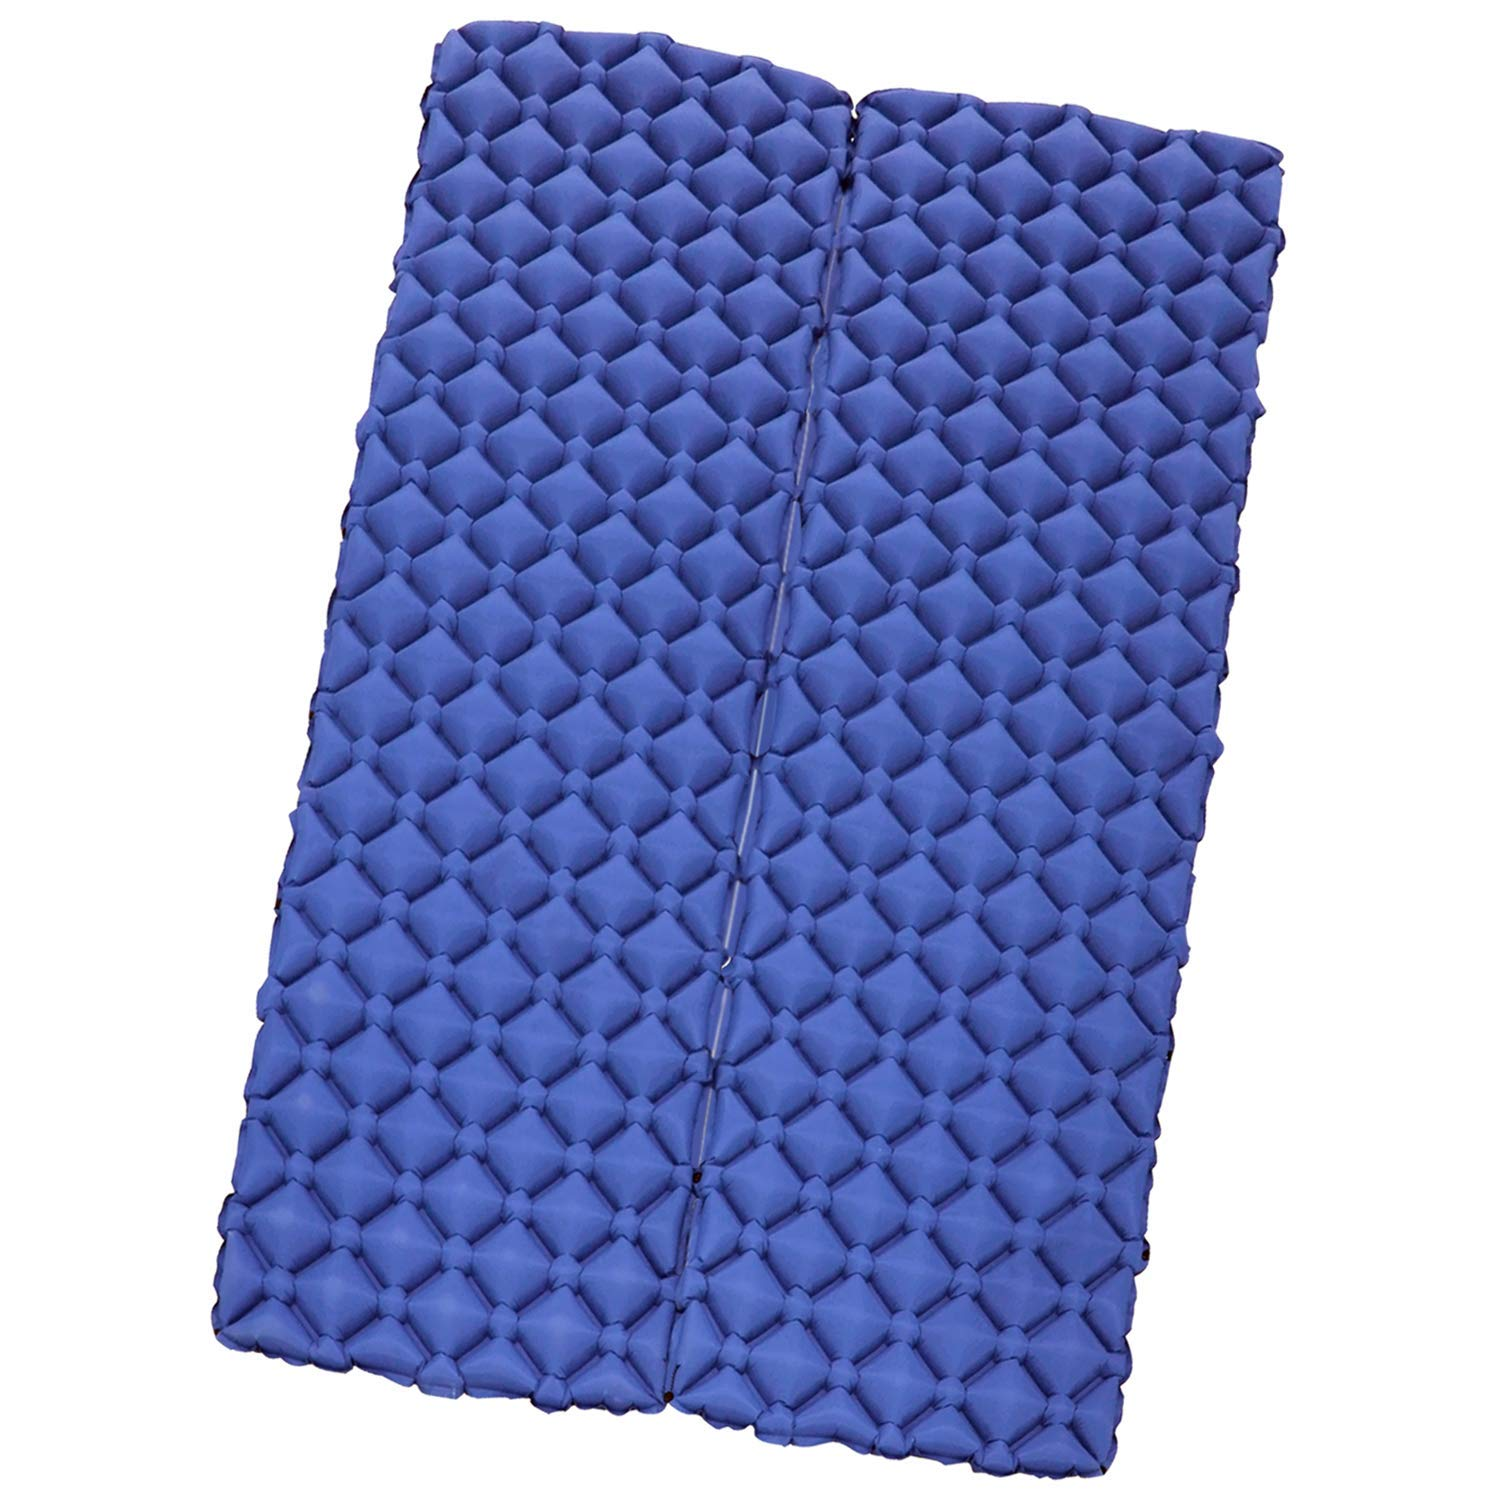 Camping Sleeping Pad for 2 Person - Inflatable Sleeping Pad, Ultralight Sleeping Mat Come with Connect Buckles, Ultralight Air Sleeping Pad, Folding Camping Mat for Outdoor Backpacking Travel by TOBEHIGHER